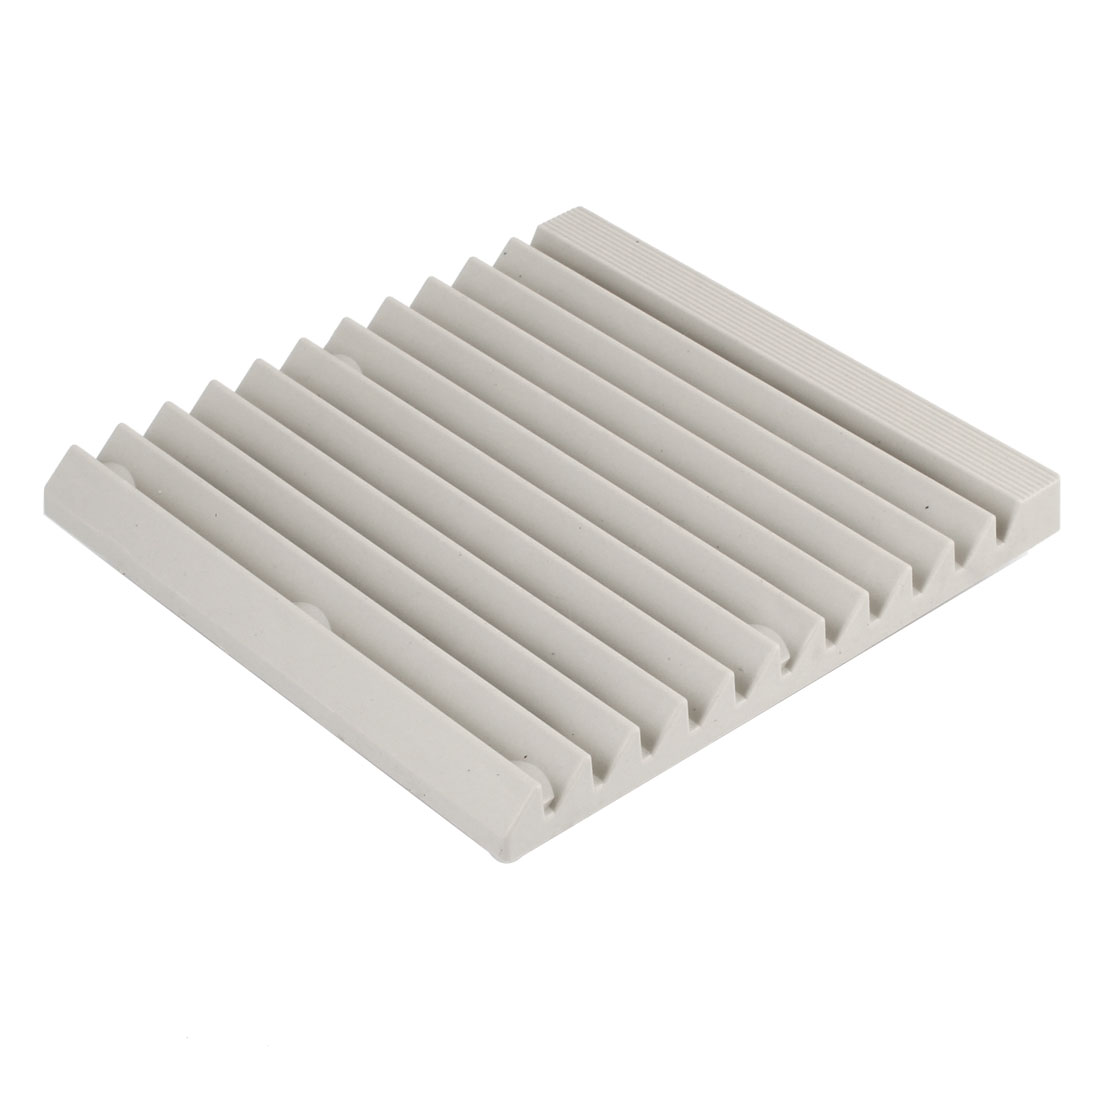 Cabinet Case Ventilator 148.5mm x 148.5mm Washable Foam Dust Filter